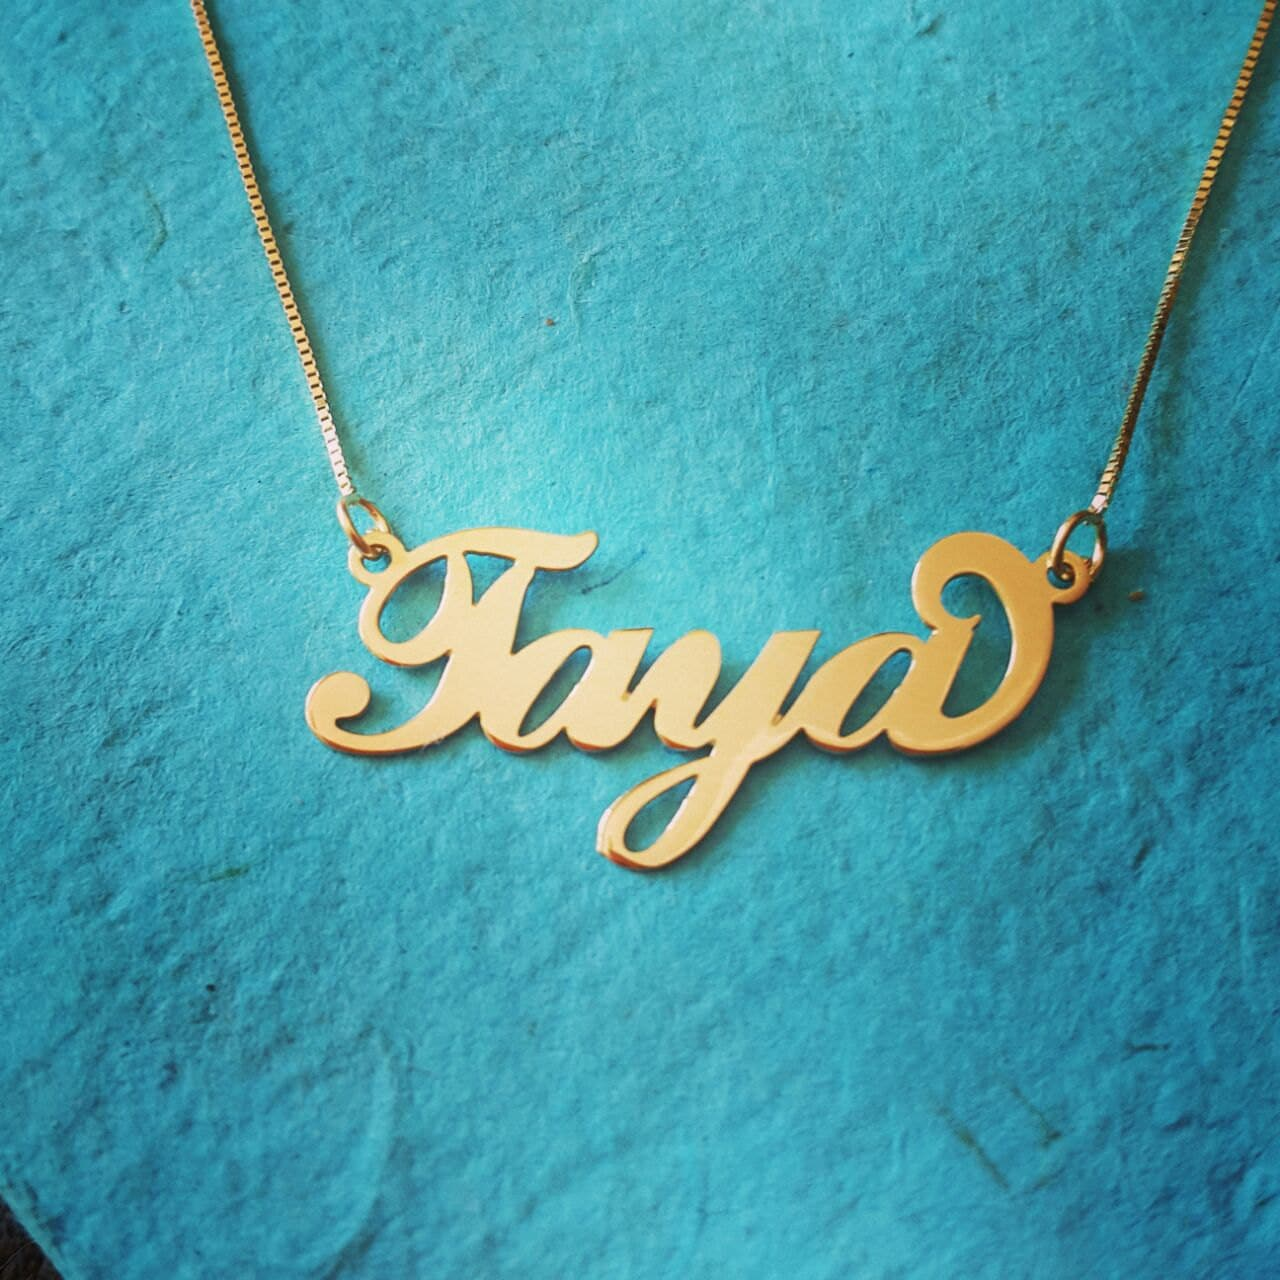 14k gold name necklace personalized name chain solid 14k. Black Bedroom Furniture Sets. Home Design Ideas